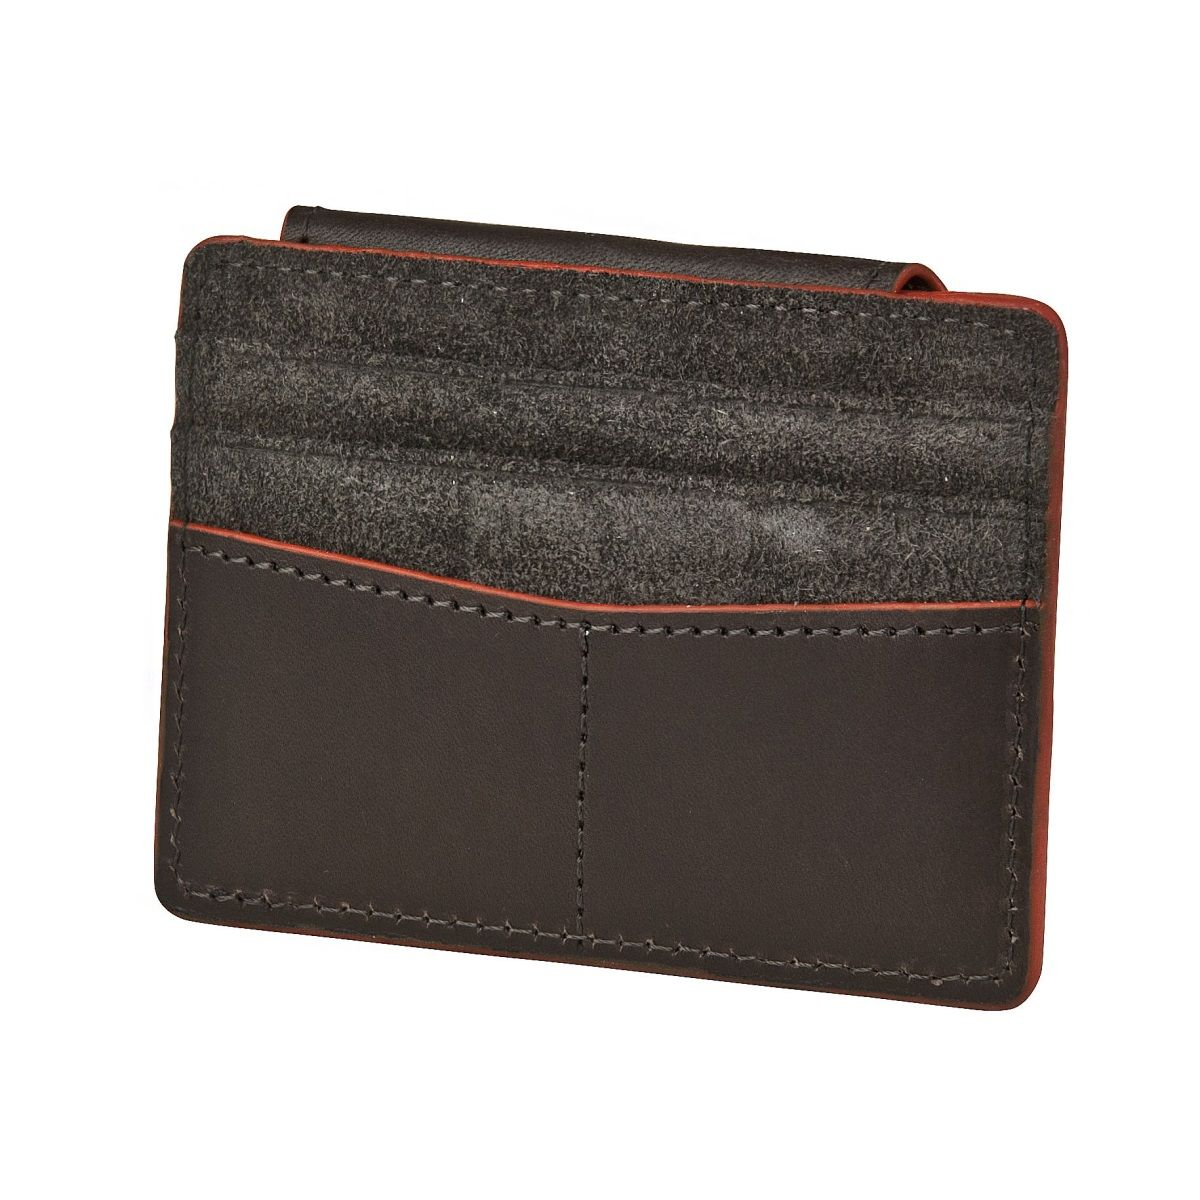 J.FOLD Mag Card Carrier - Brown